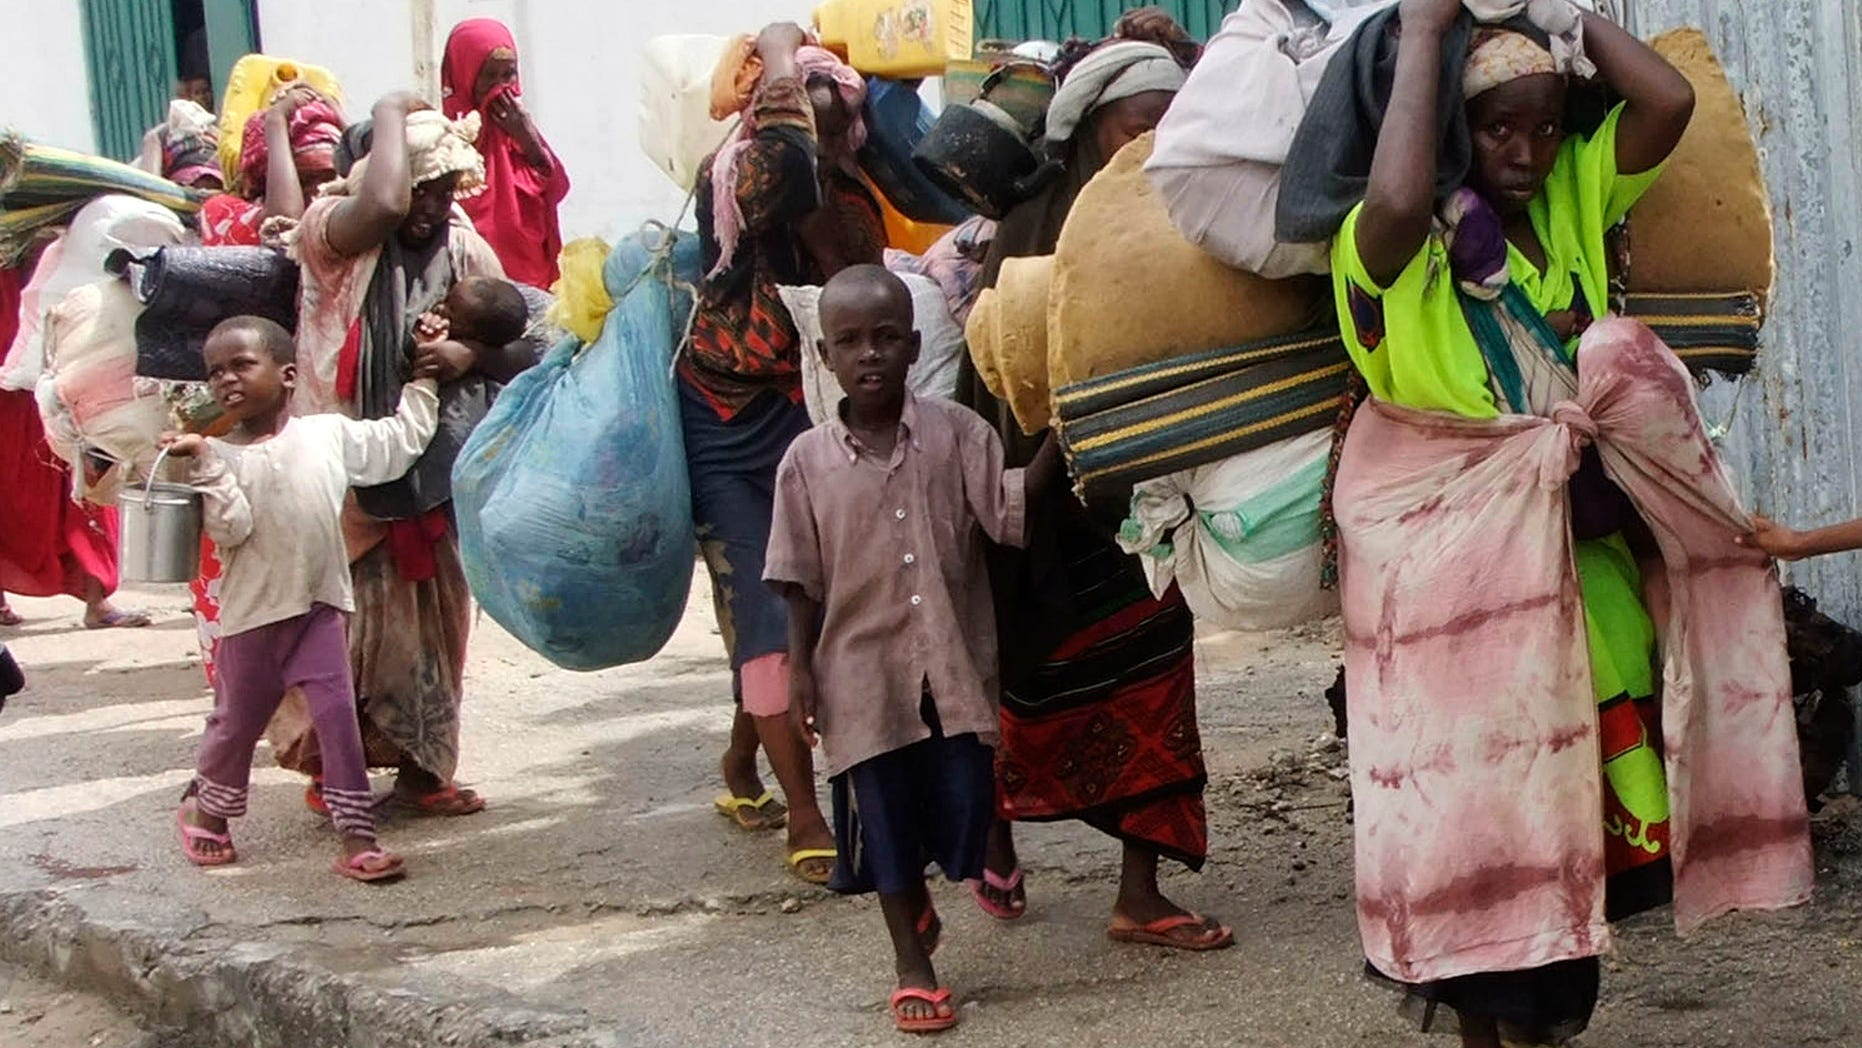 Aug. 5, 2011: Somalis carry their belongings from southern Somalia as they arrive in Mogadishu, Somalia